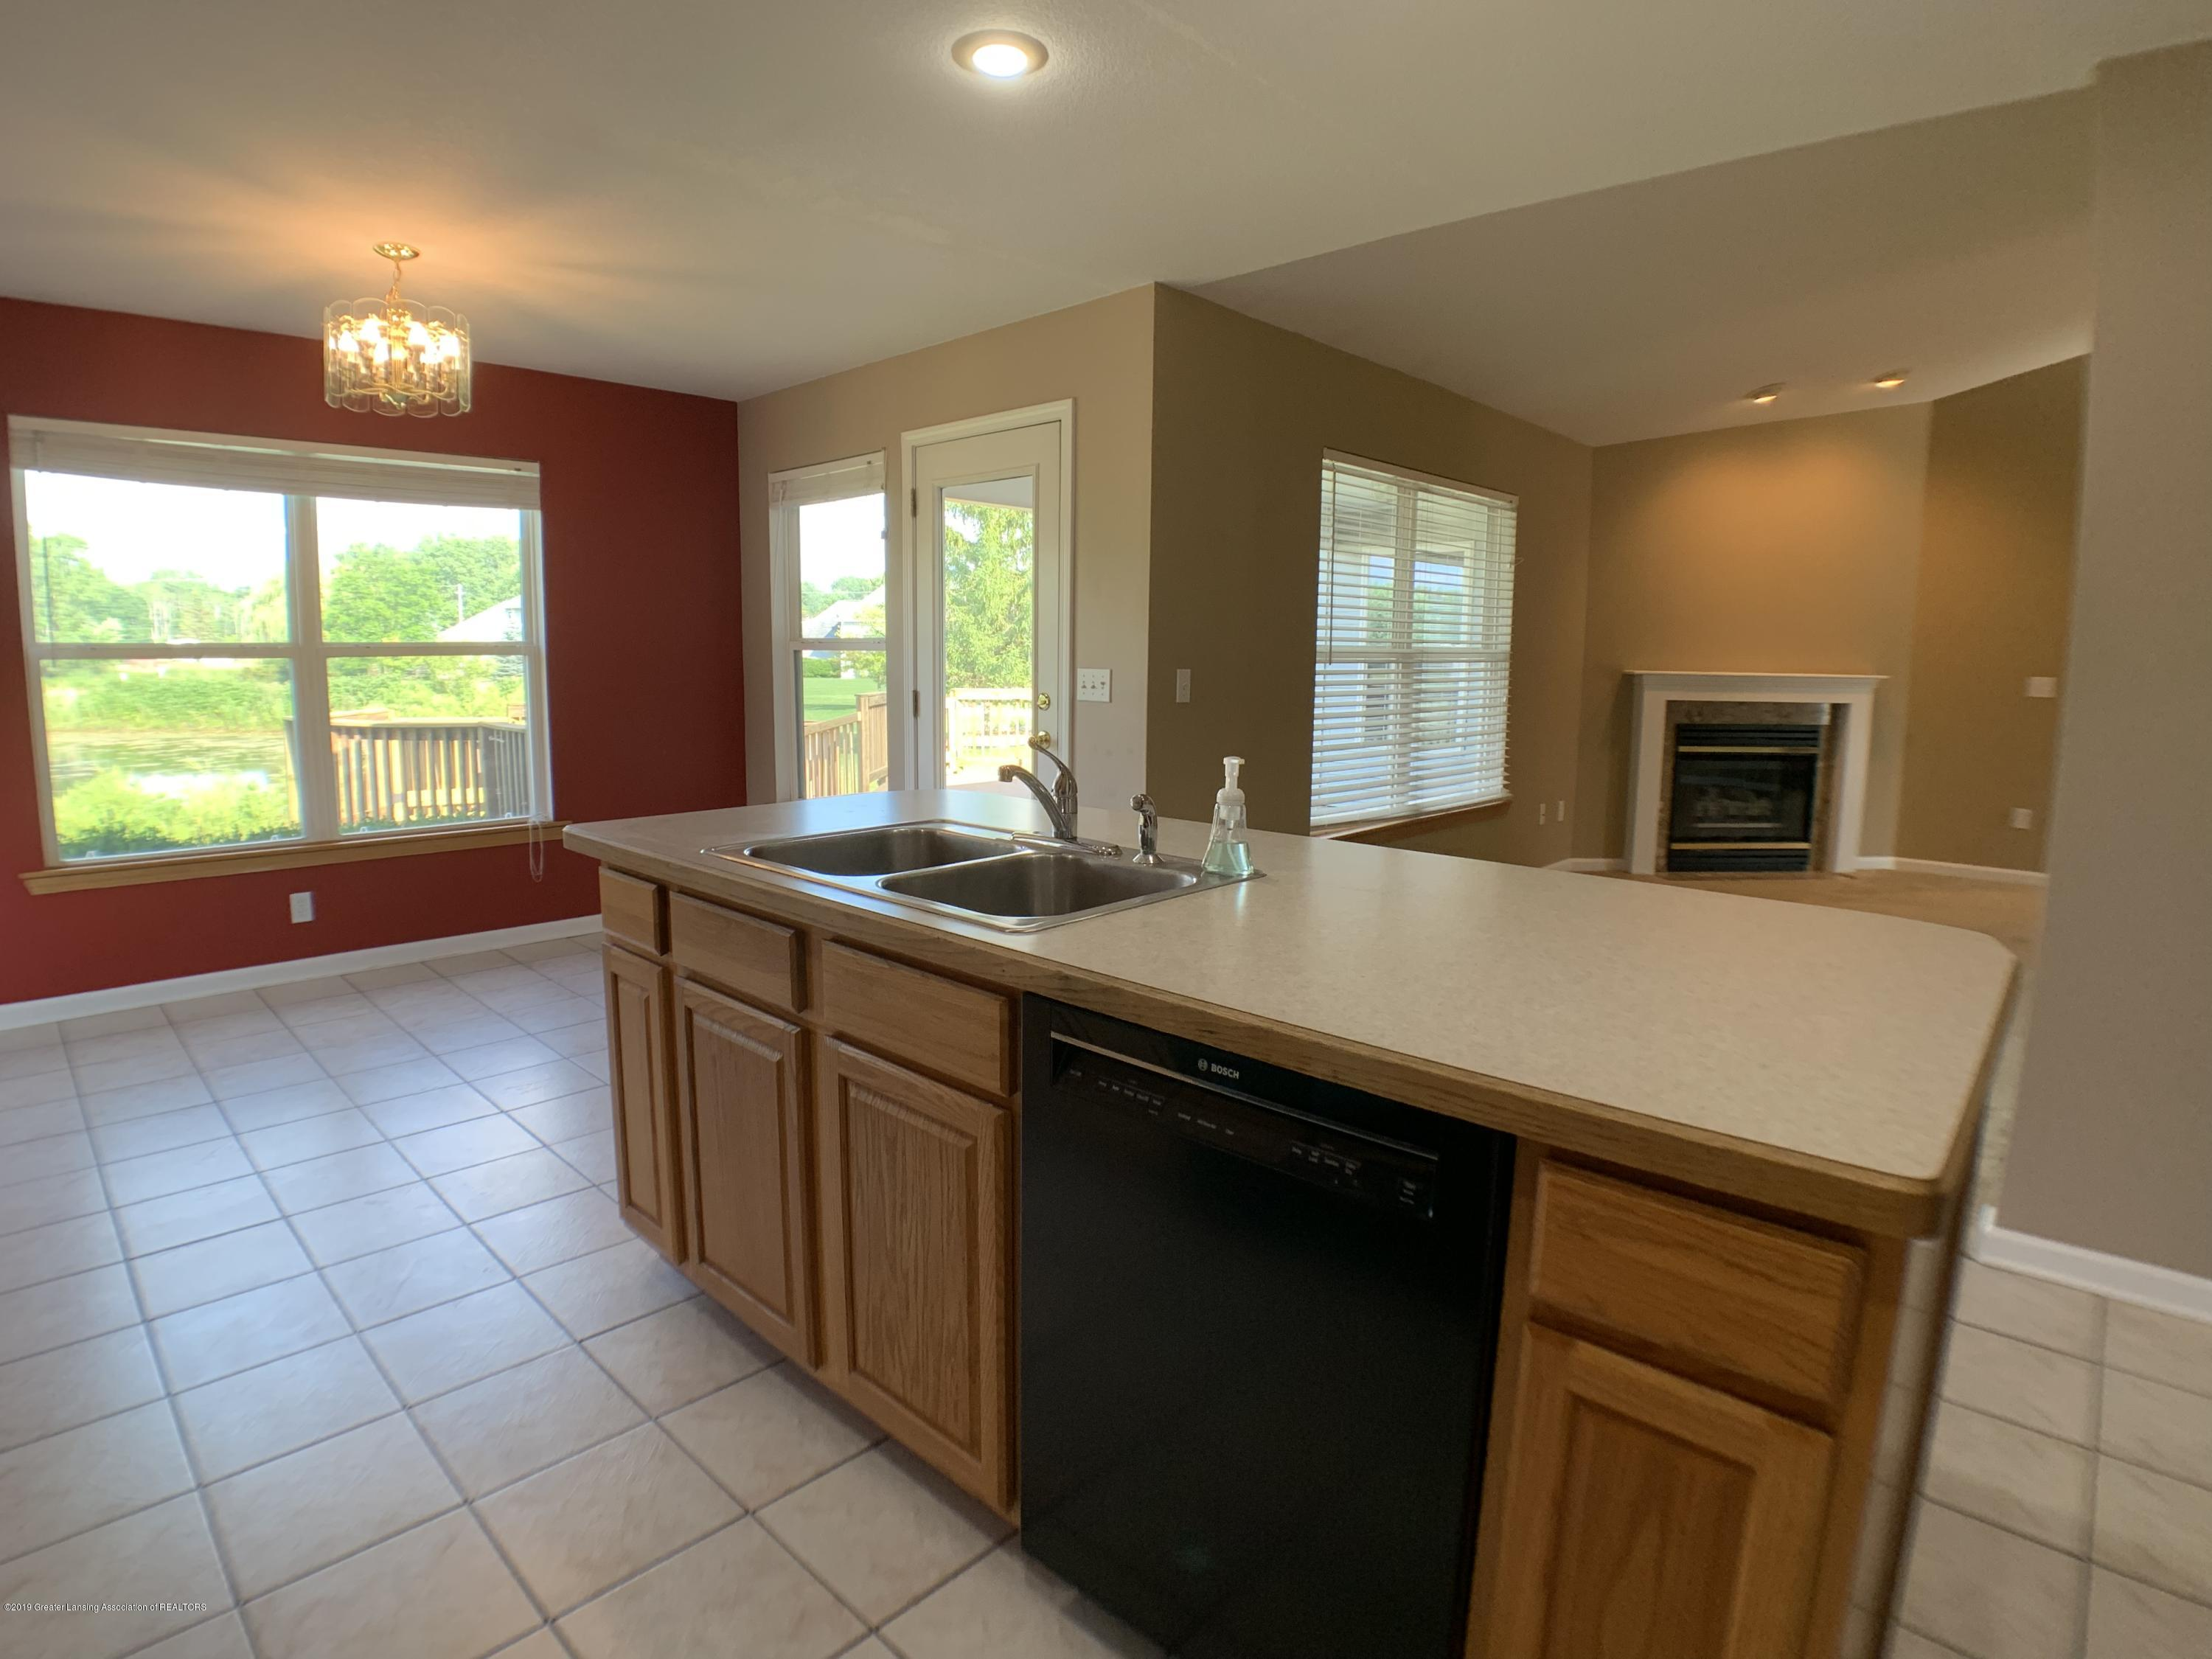 1556 Groombridge Dr - Kitchen - 17